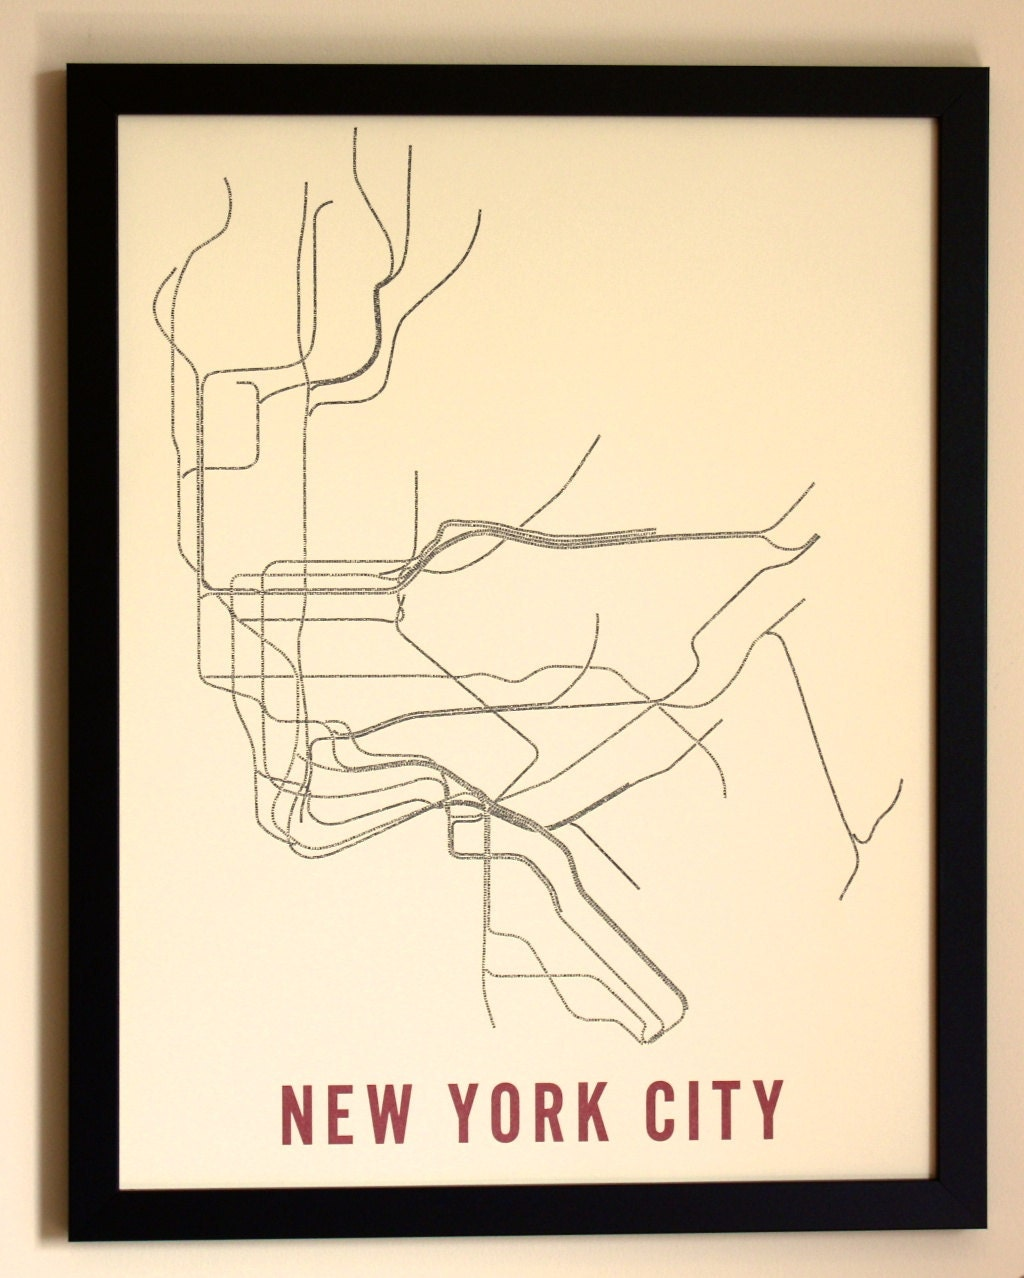 New York City Typographic Transit Map Poster - Nyc map art